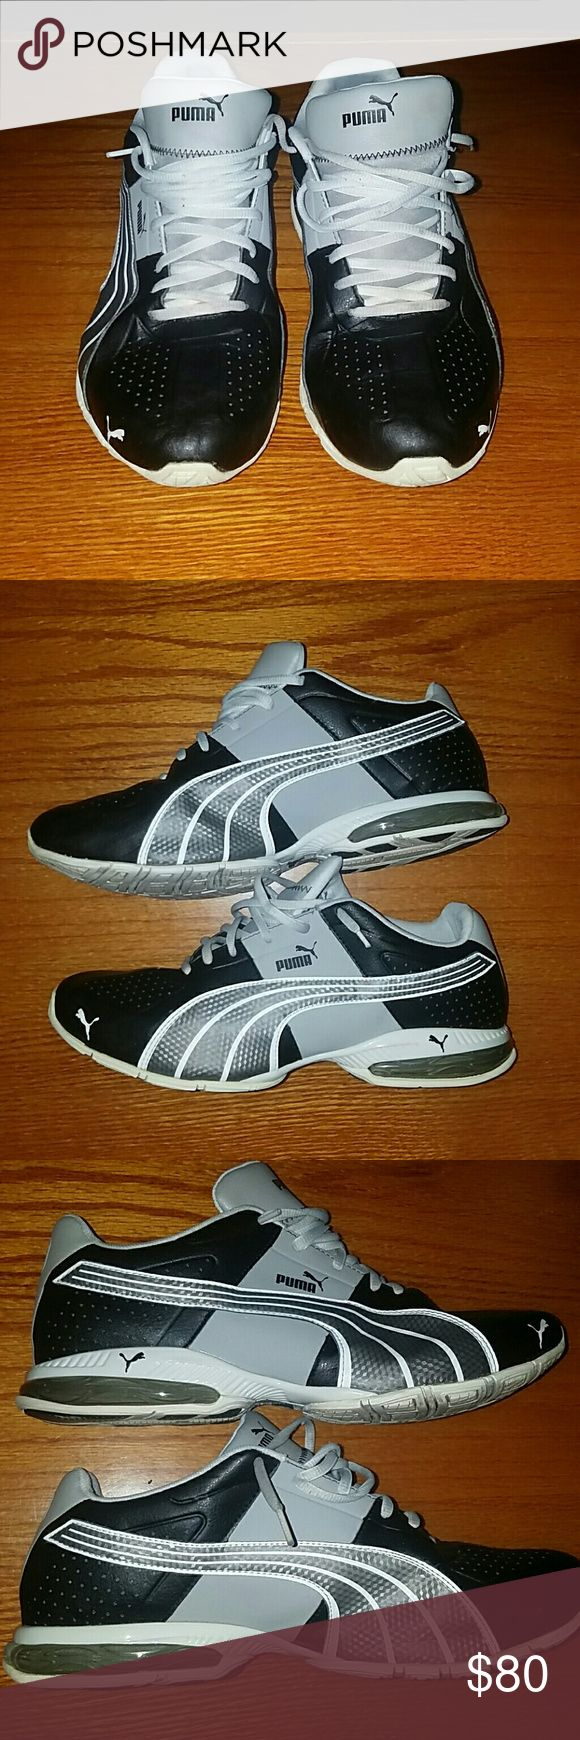 Mens Pumas Nice Mens puma running shoes. BLACK leather with silver Puma stripes. Used but plenty of out on the town or running wears left. Puma Shoes Athletic Shoes